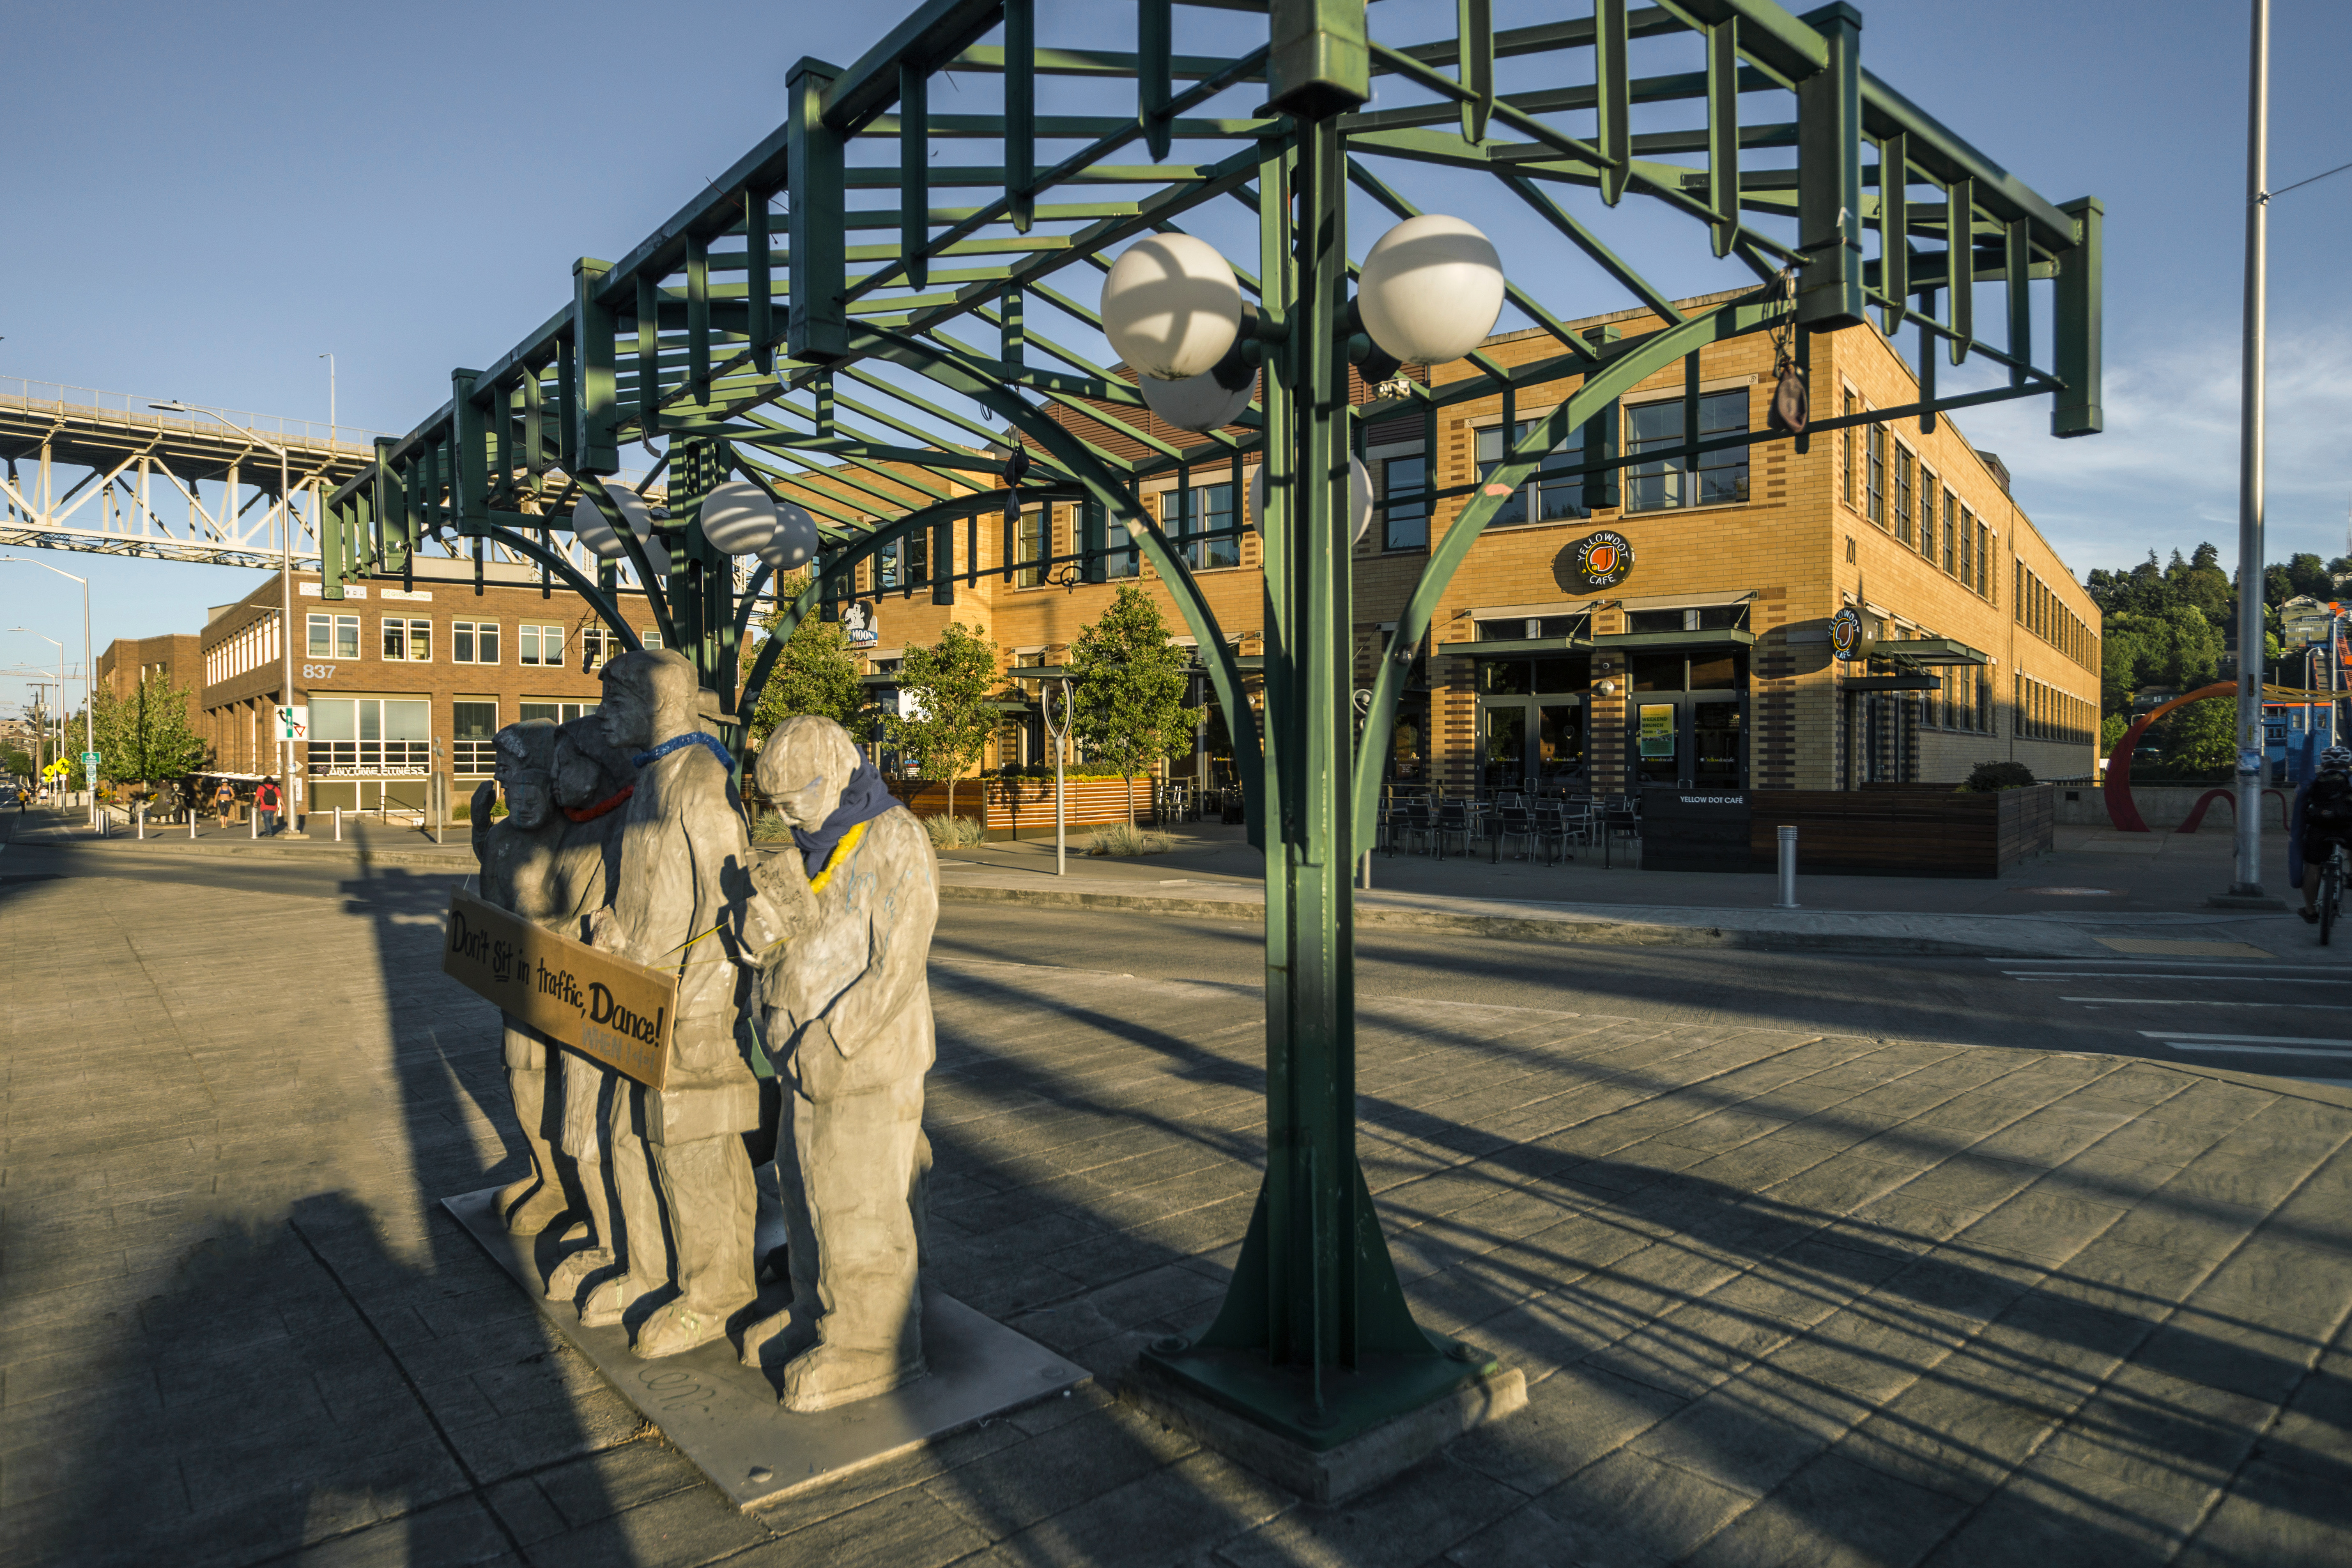 Stone figures stand beneath an iron-and-glass shelter that looks like a bus stop. There's a street and a brick building in the background.